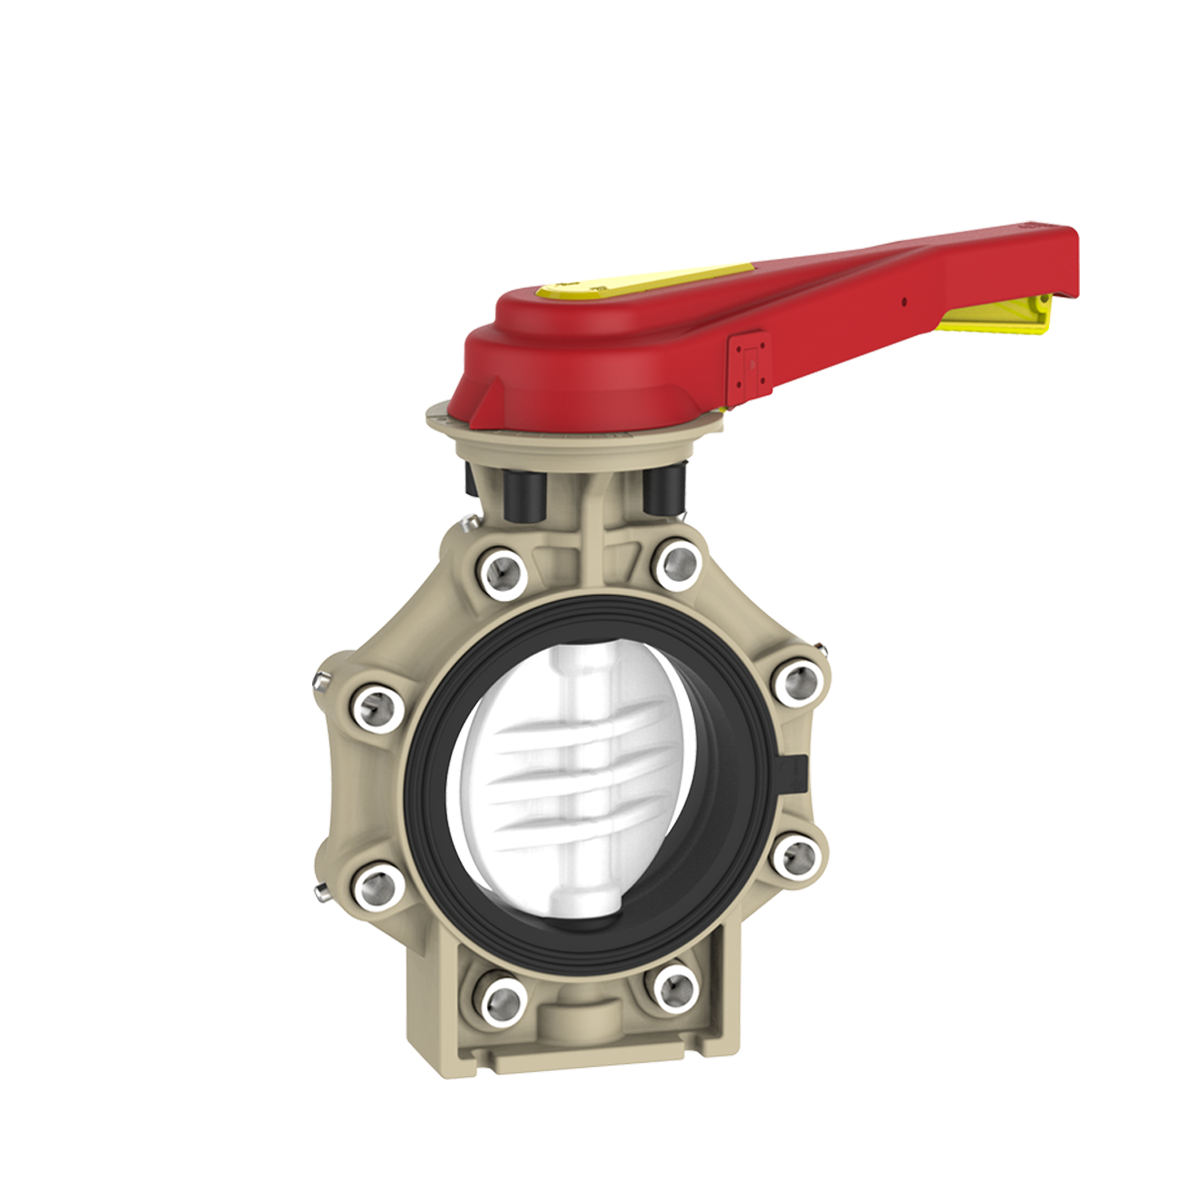 Lever Butterfly Valve : Praher butterfly valve k pvdf with hand lever and lug